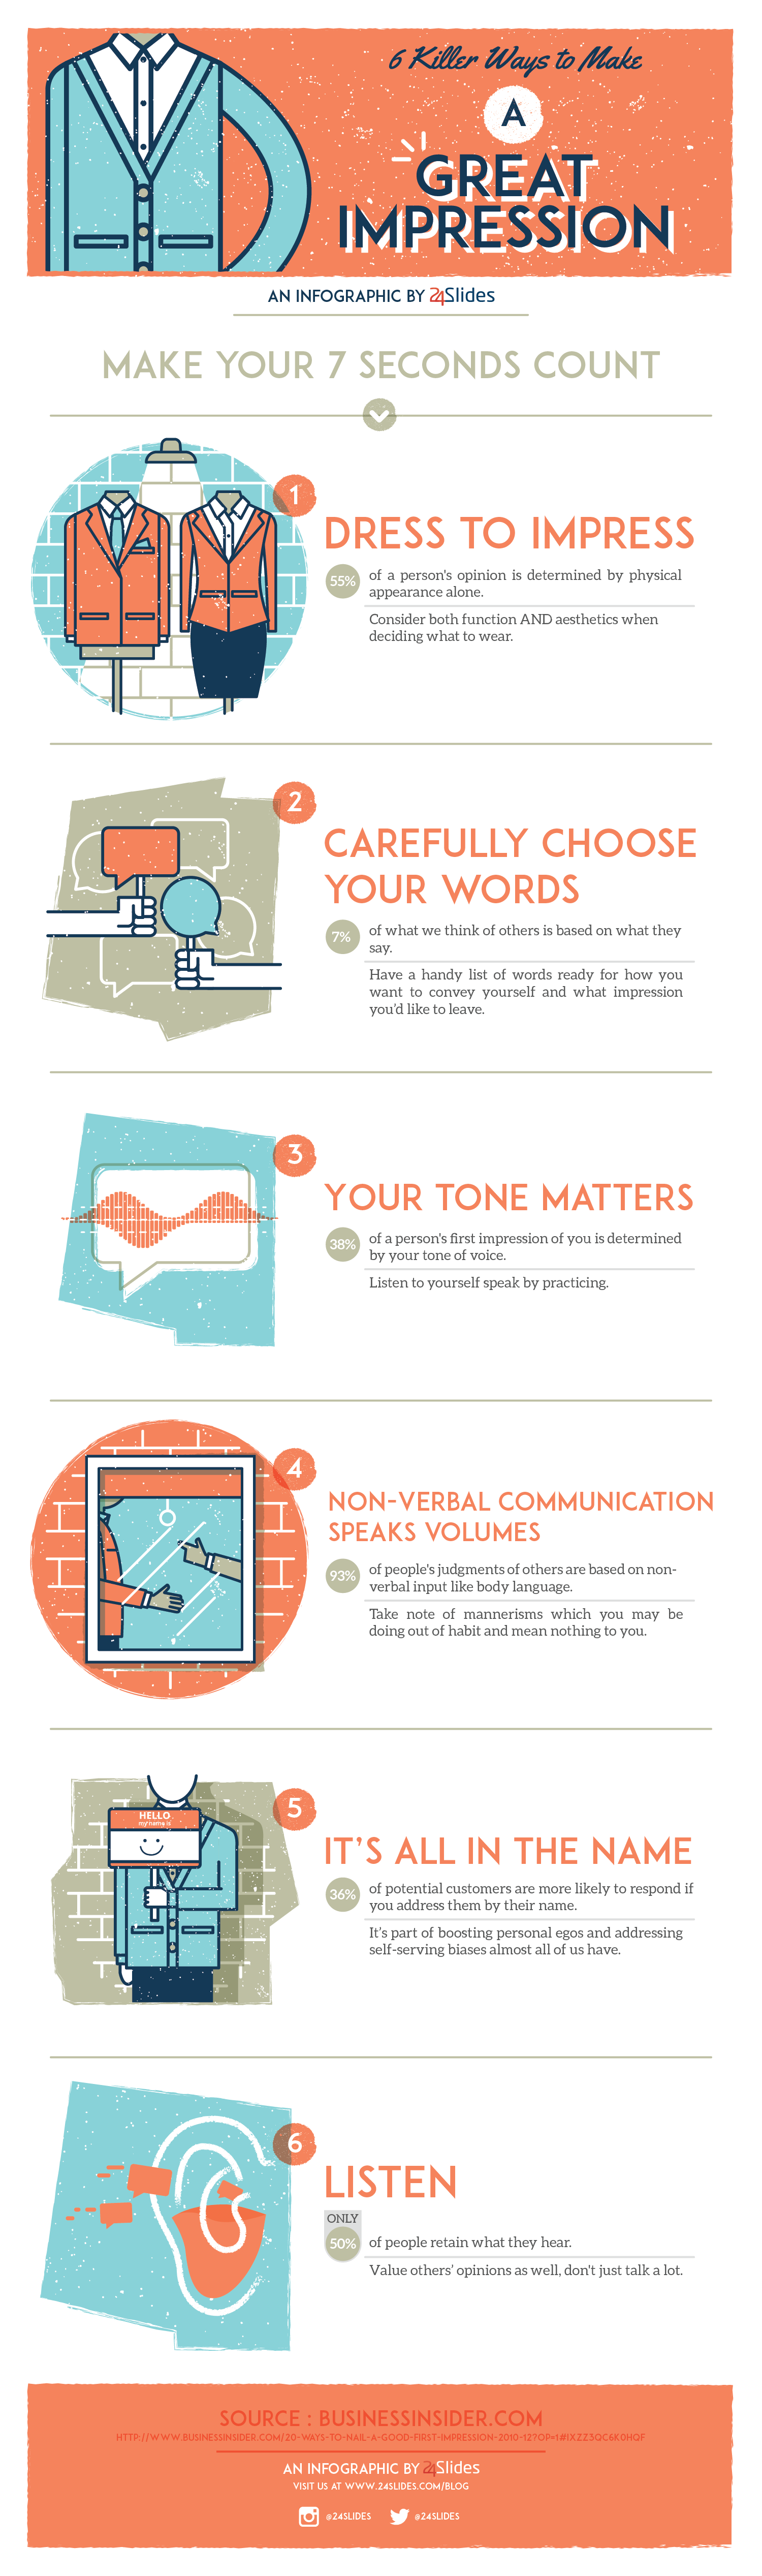 6 Killer Ways to Make a Great First Impression Infographic